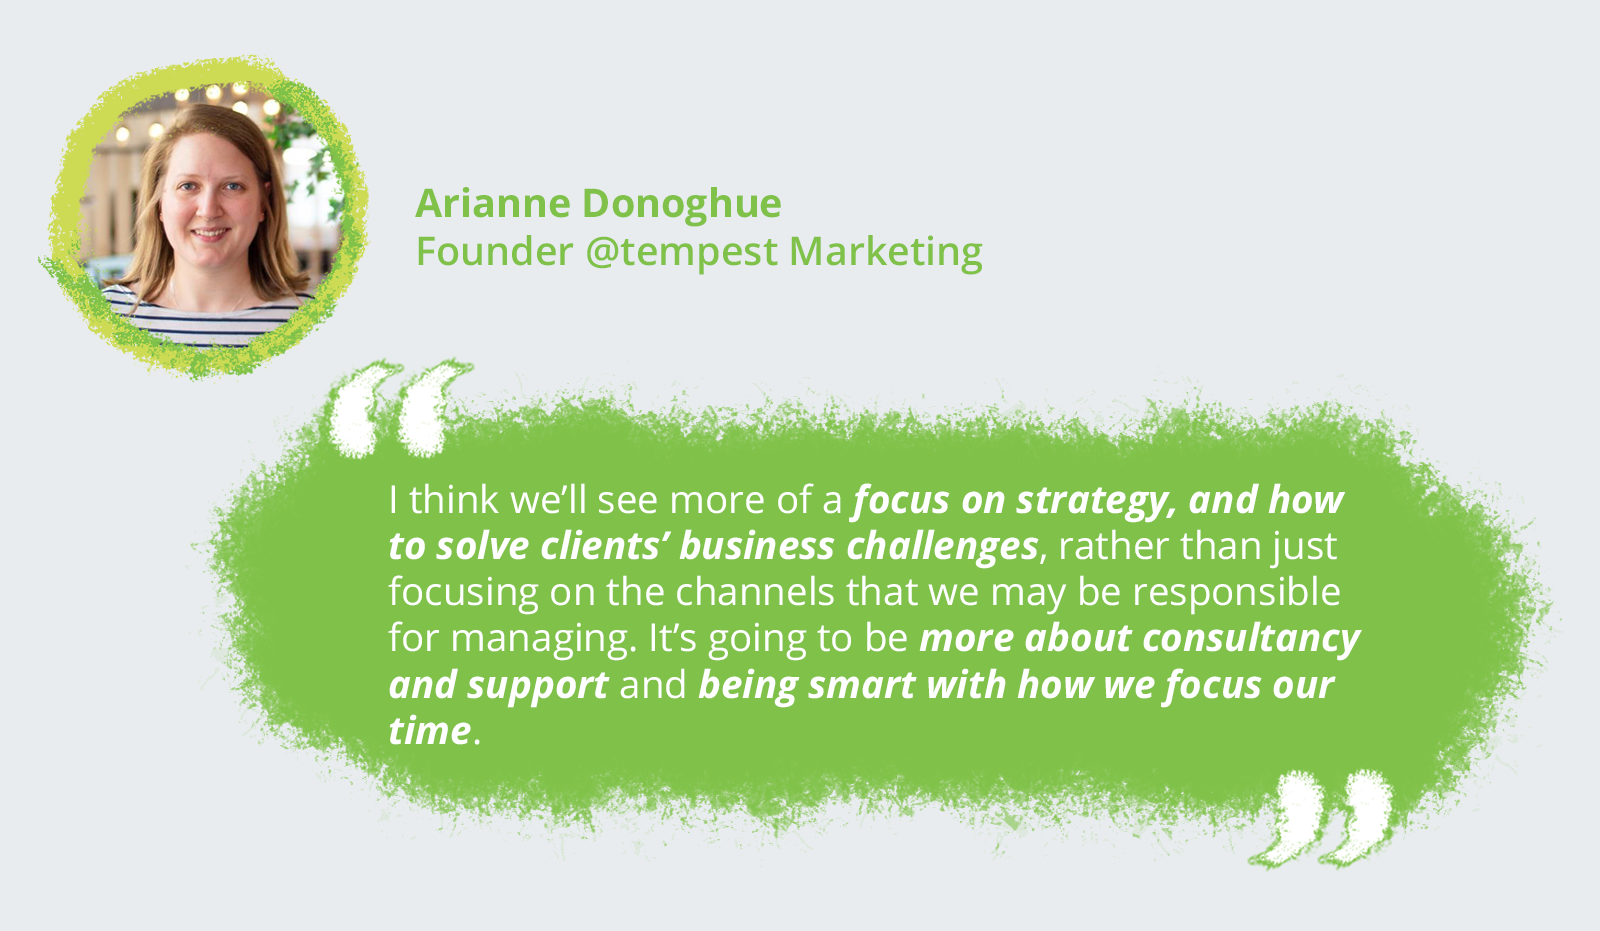 Arianne Donoghue, Founder @tempest Marketing